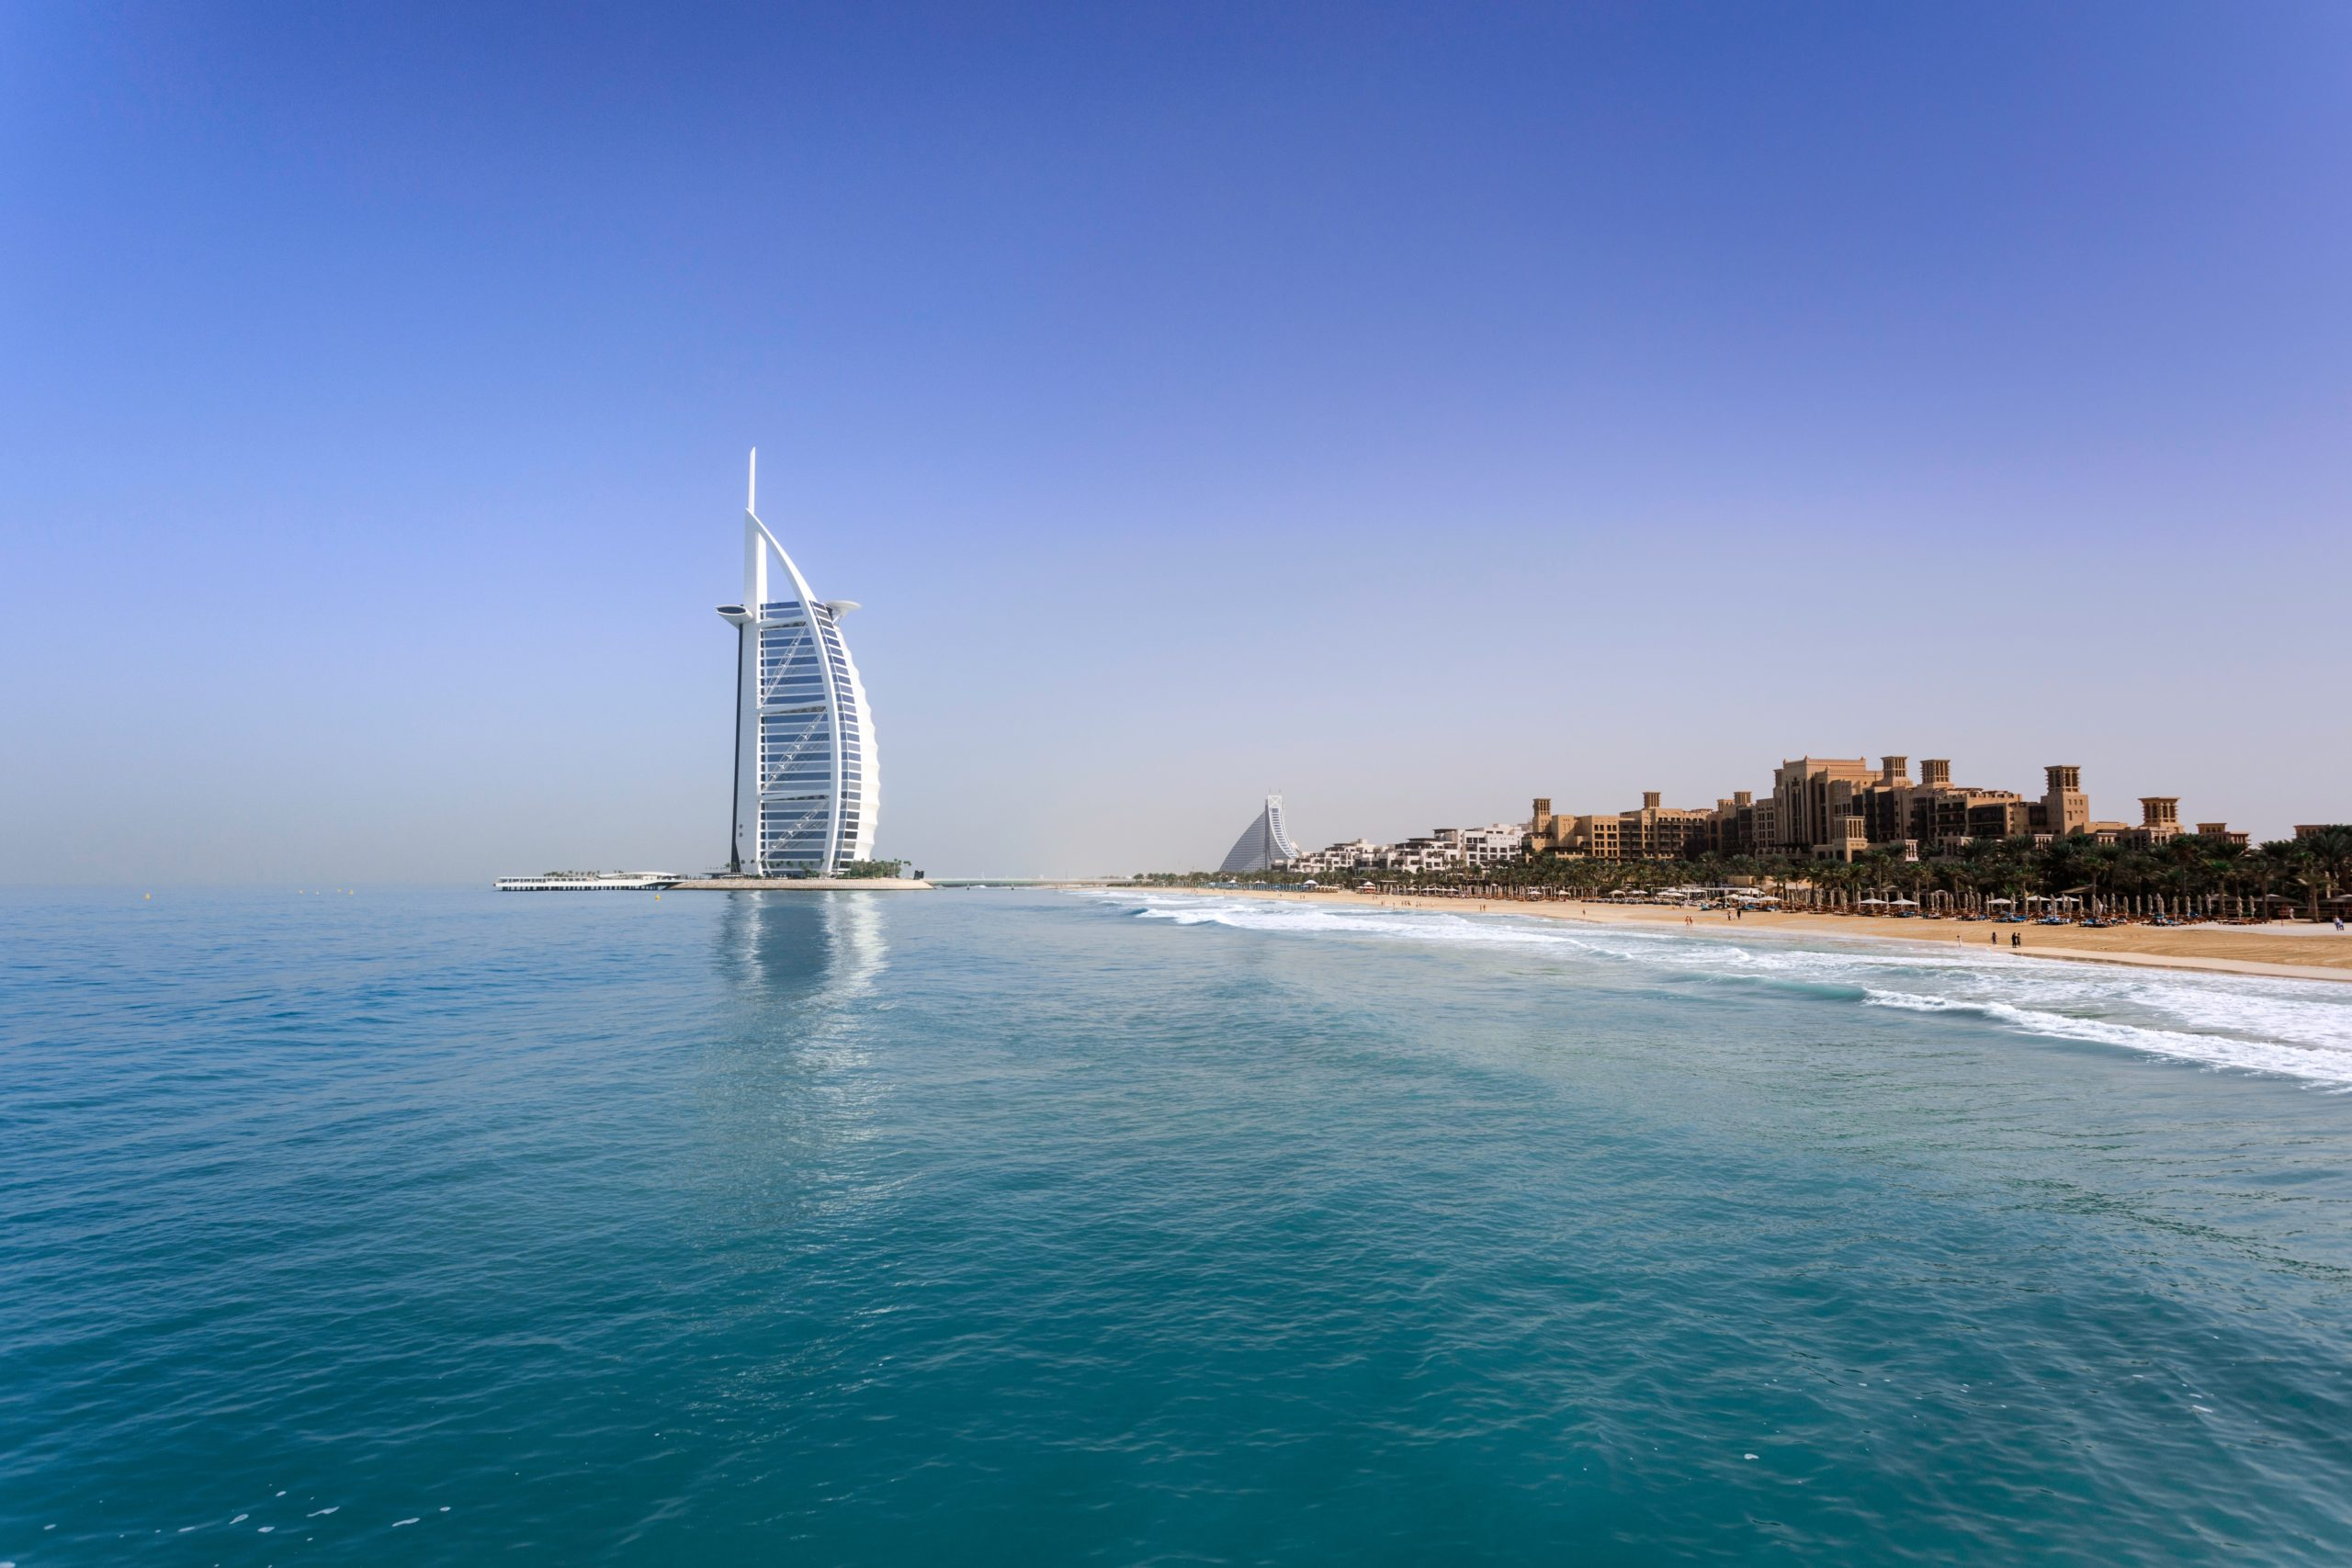 The Travel Blogger's Guide to Dubai